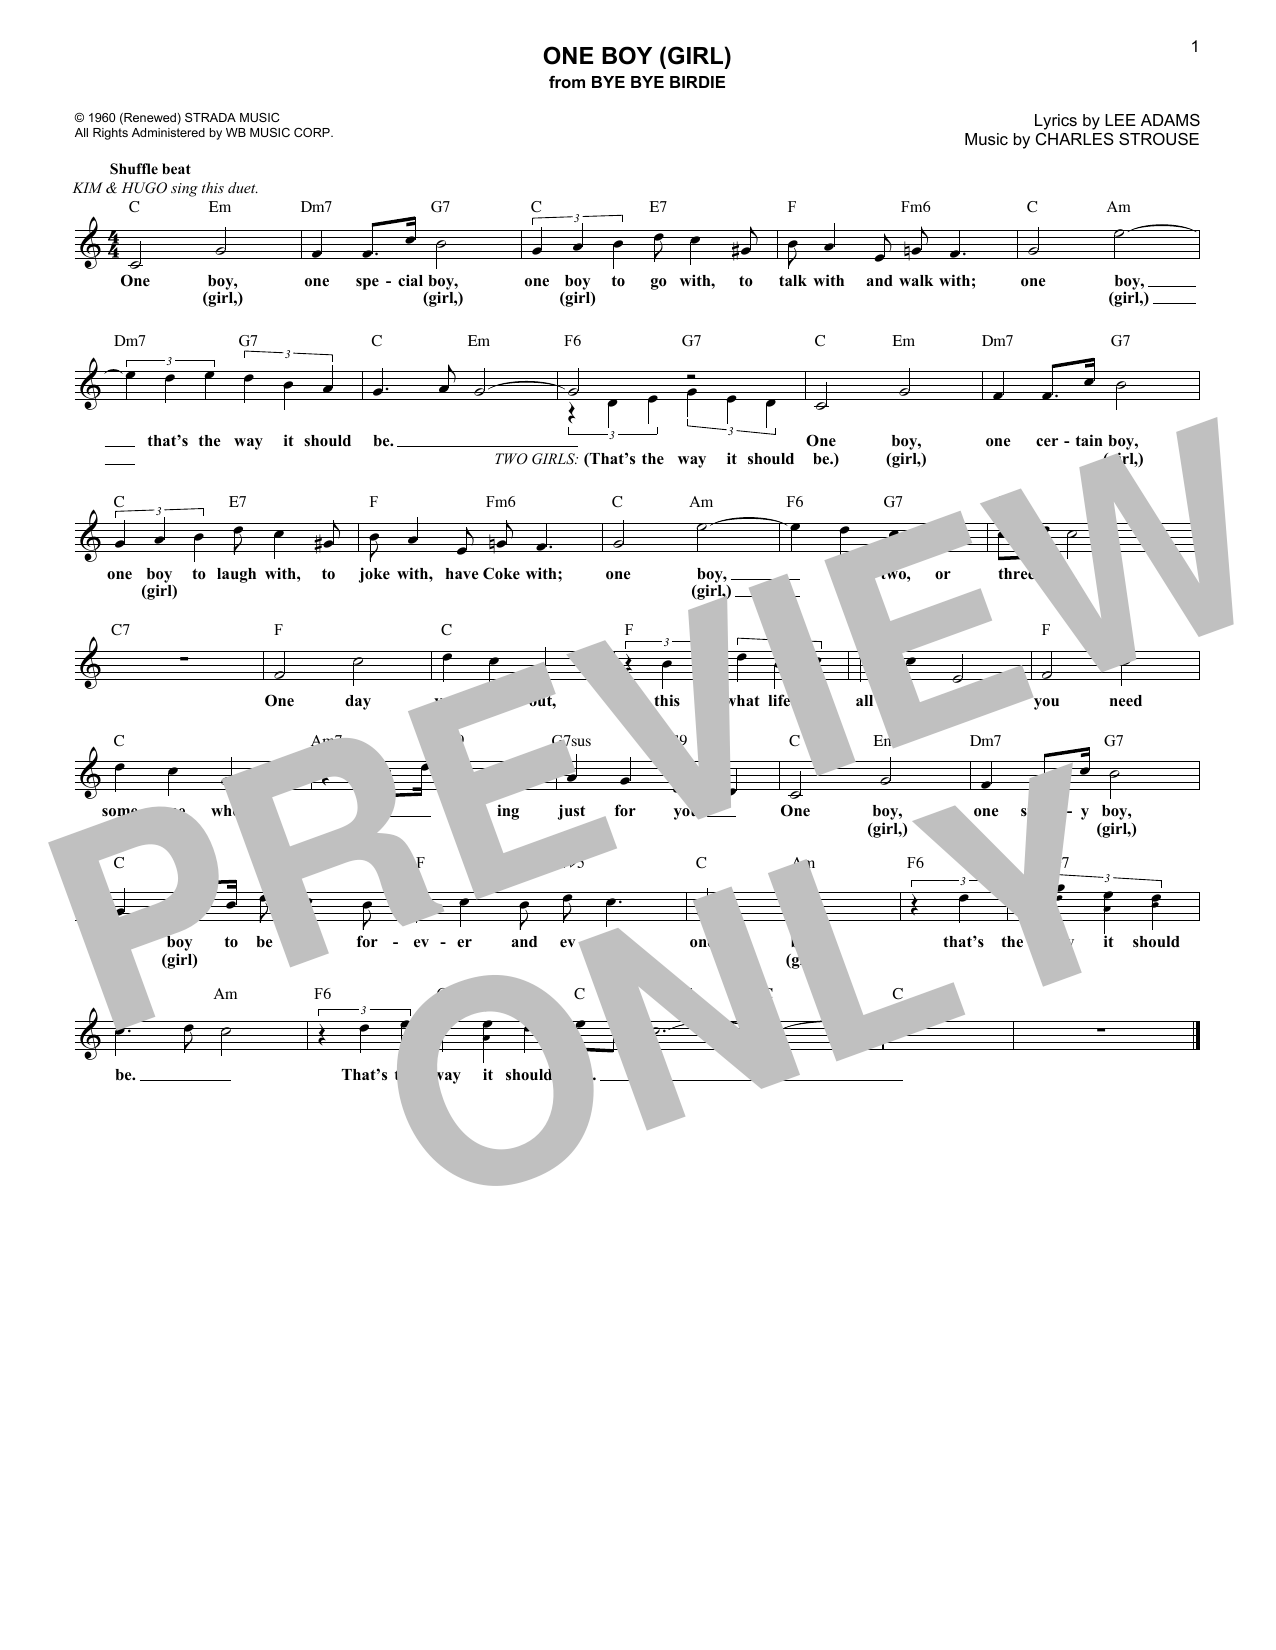 Charles Strouse One Boy (Girl) (from Bye Bye Birdie) sheet music notes and chords. Download Printable PDF.